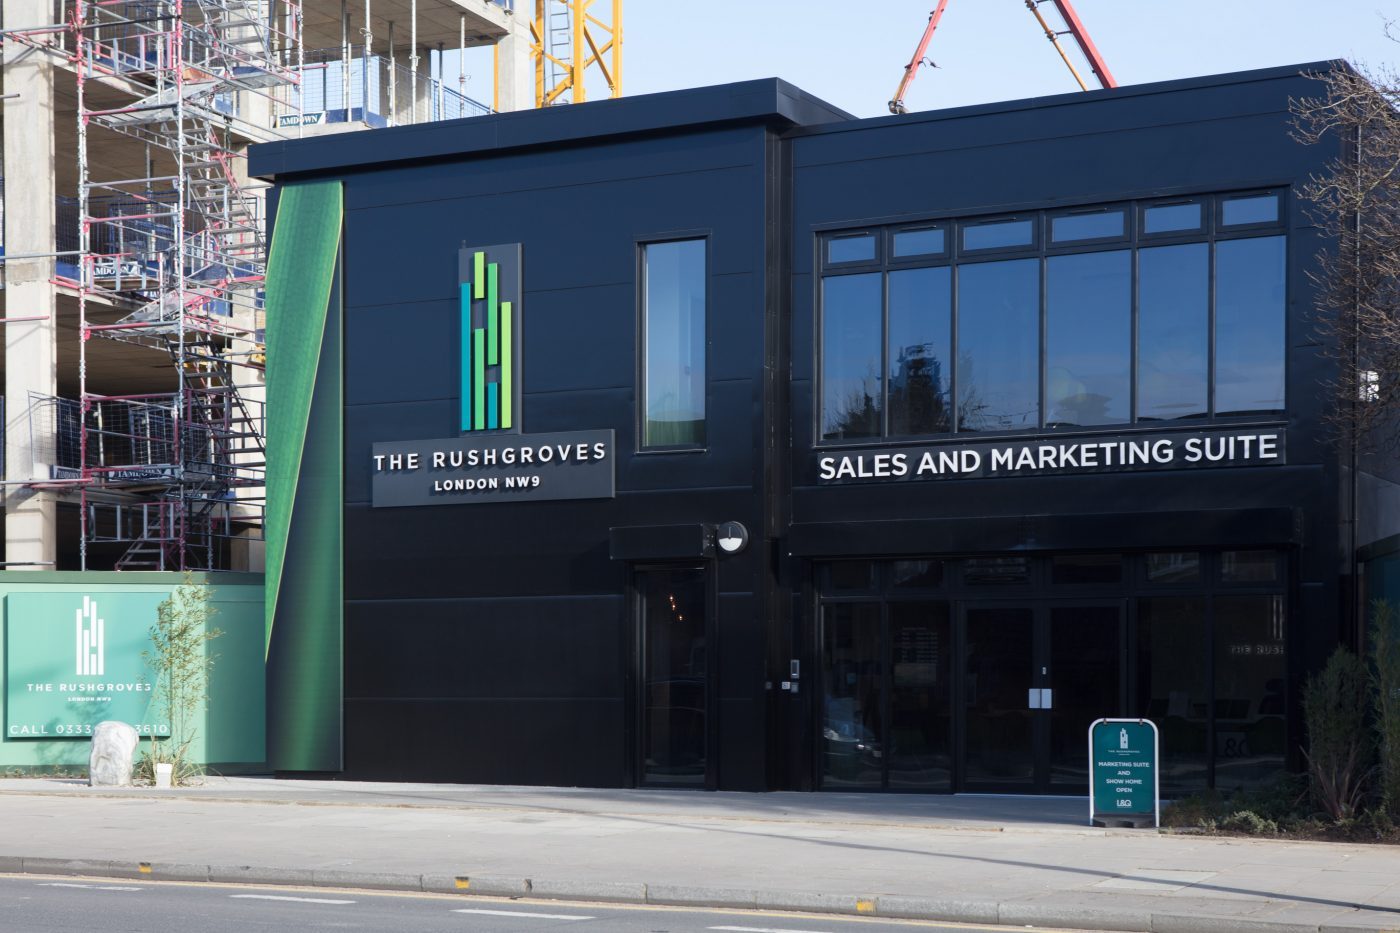 exterior of marketing suite for Rushgroves